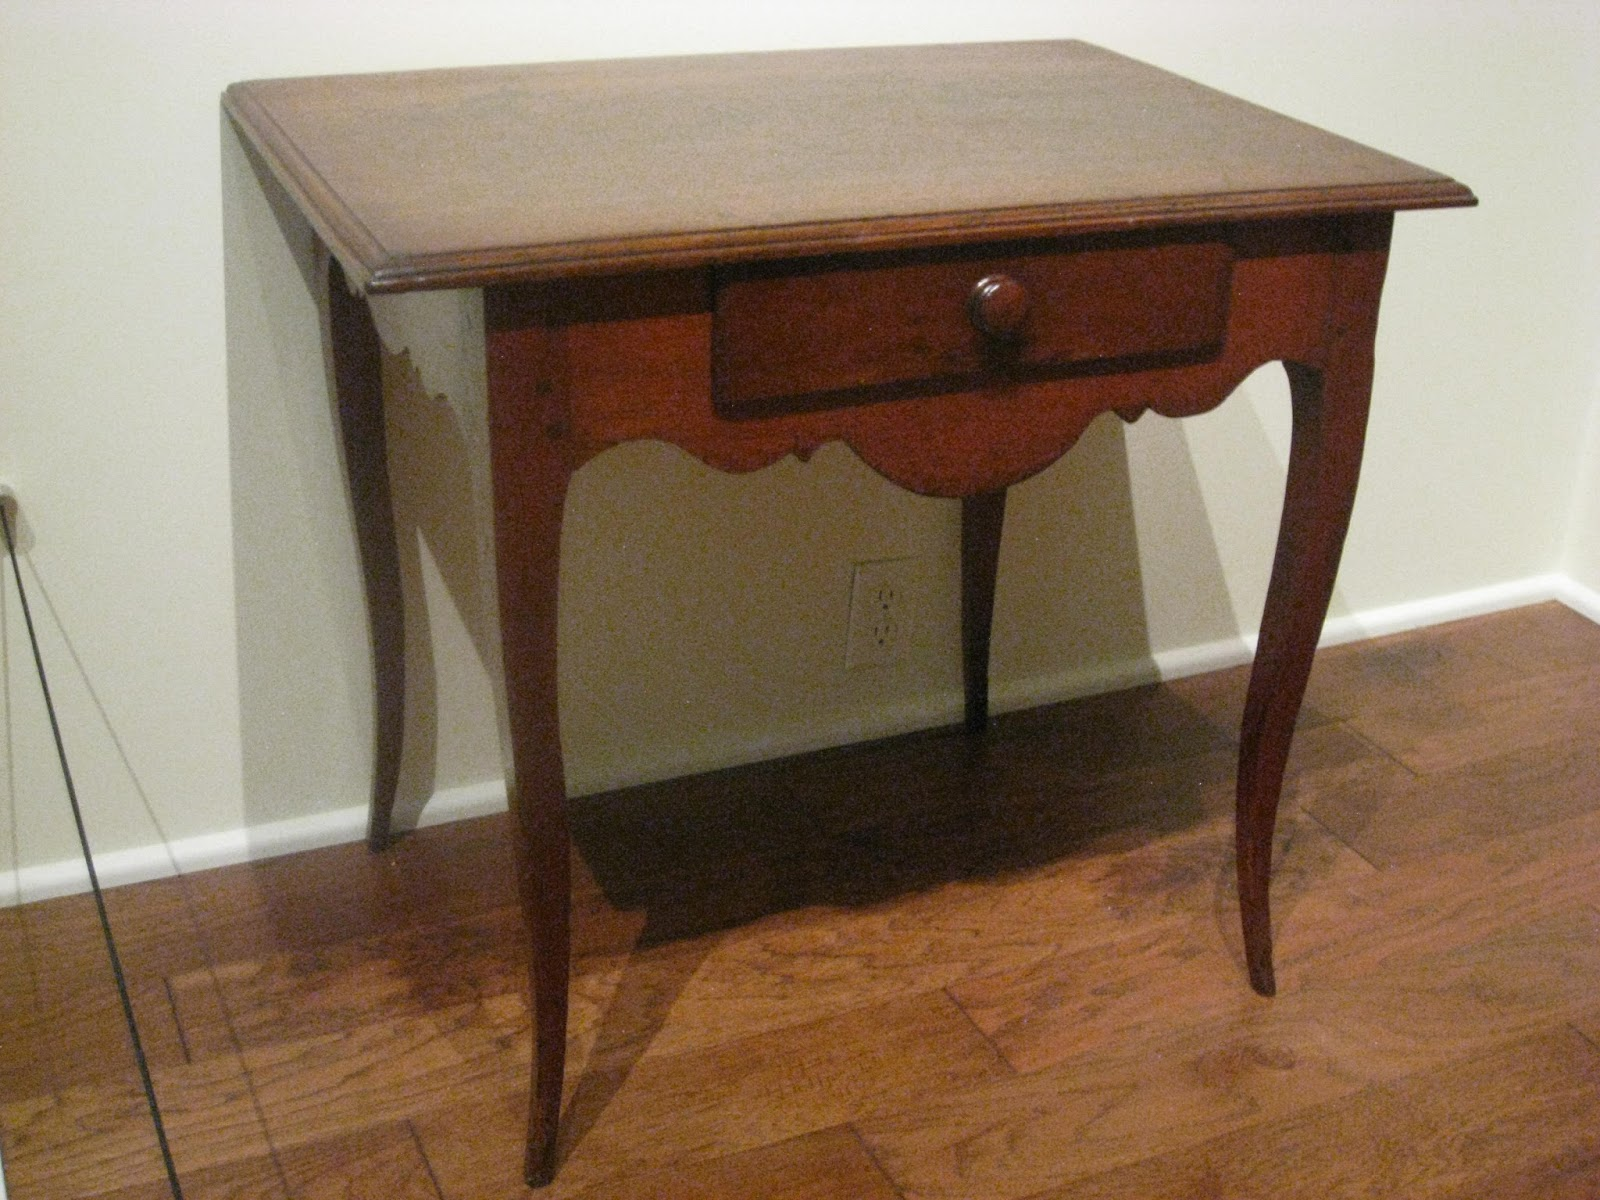 Genial The Topic Of Early Louisiana Furniture Had Long Been Ignored, Partly  Because Of Some Northern Bias Among Decorative Arts Scholars. U201cIn 1949,  Joseph Downs, ...